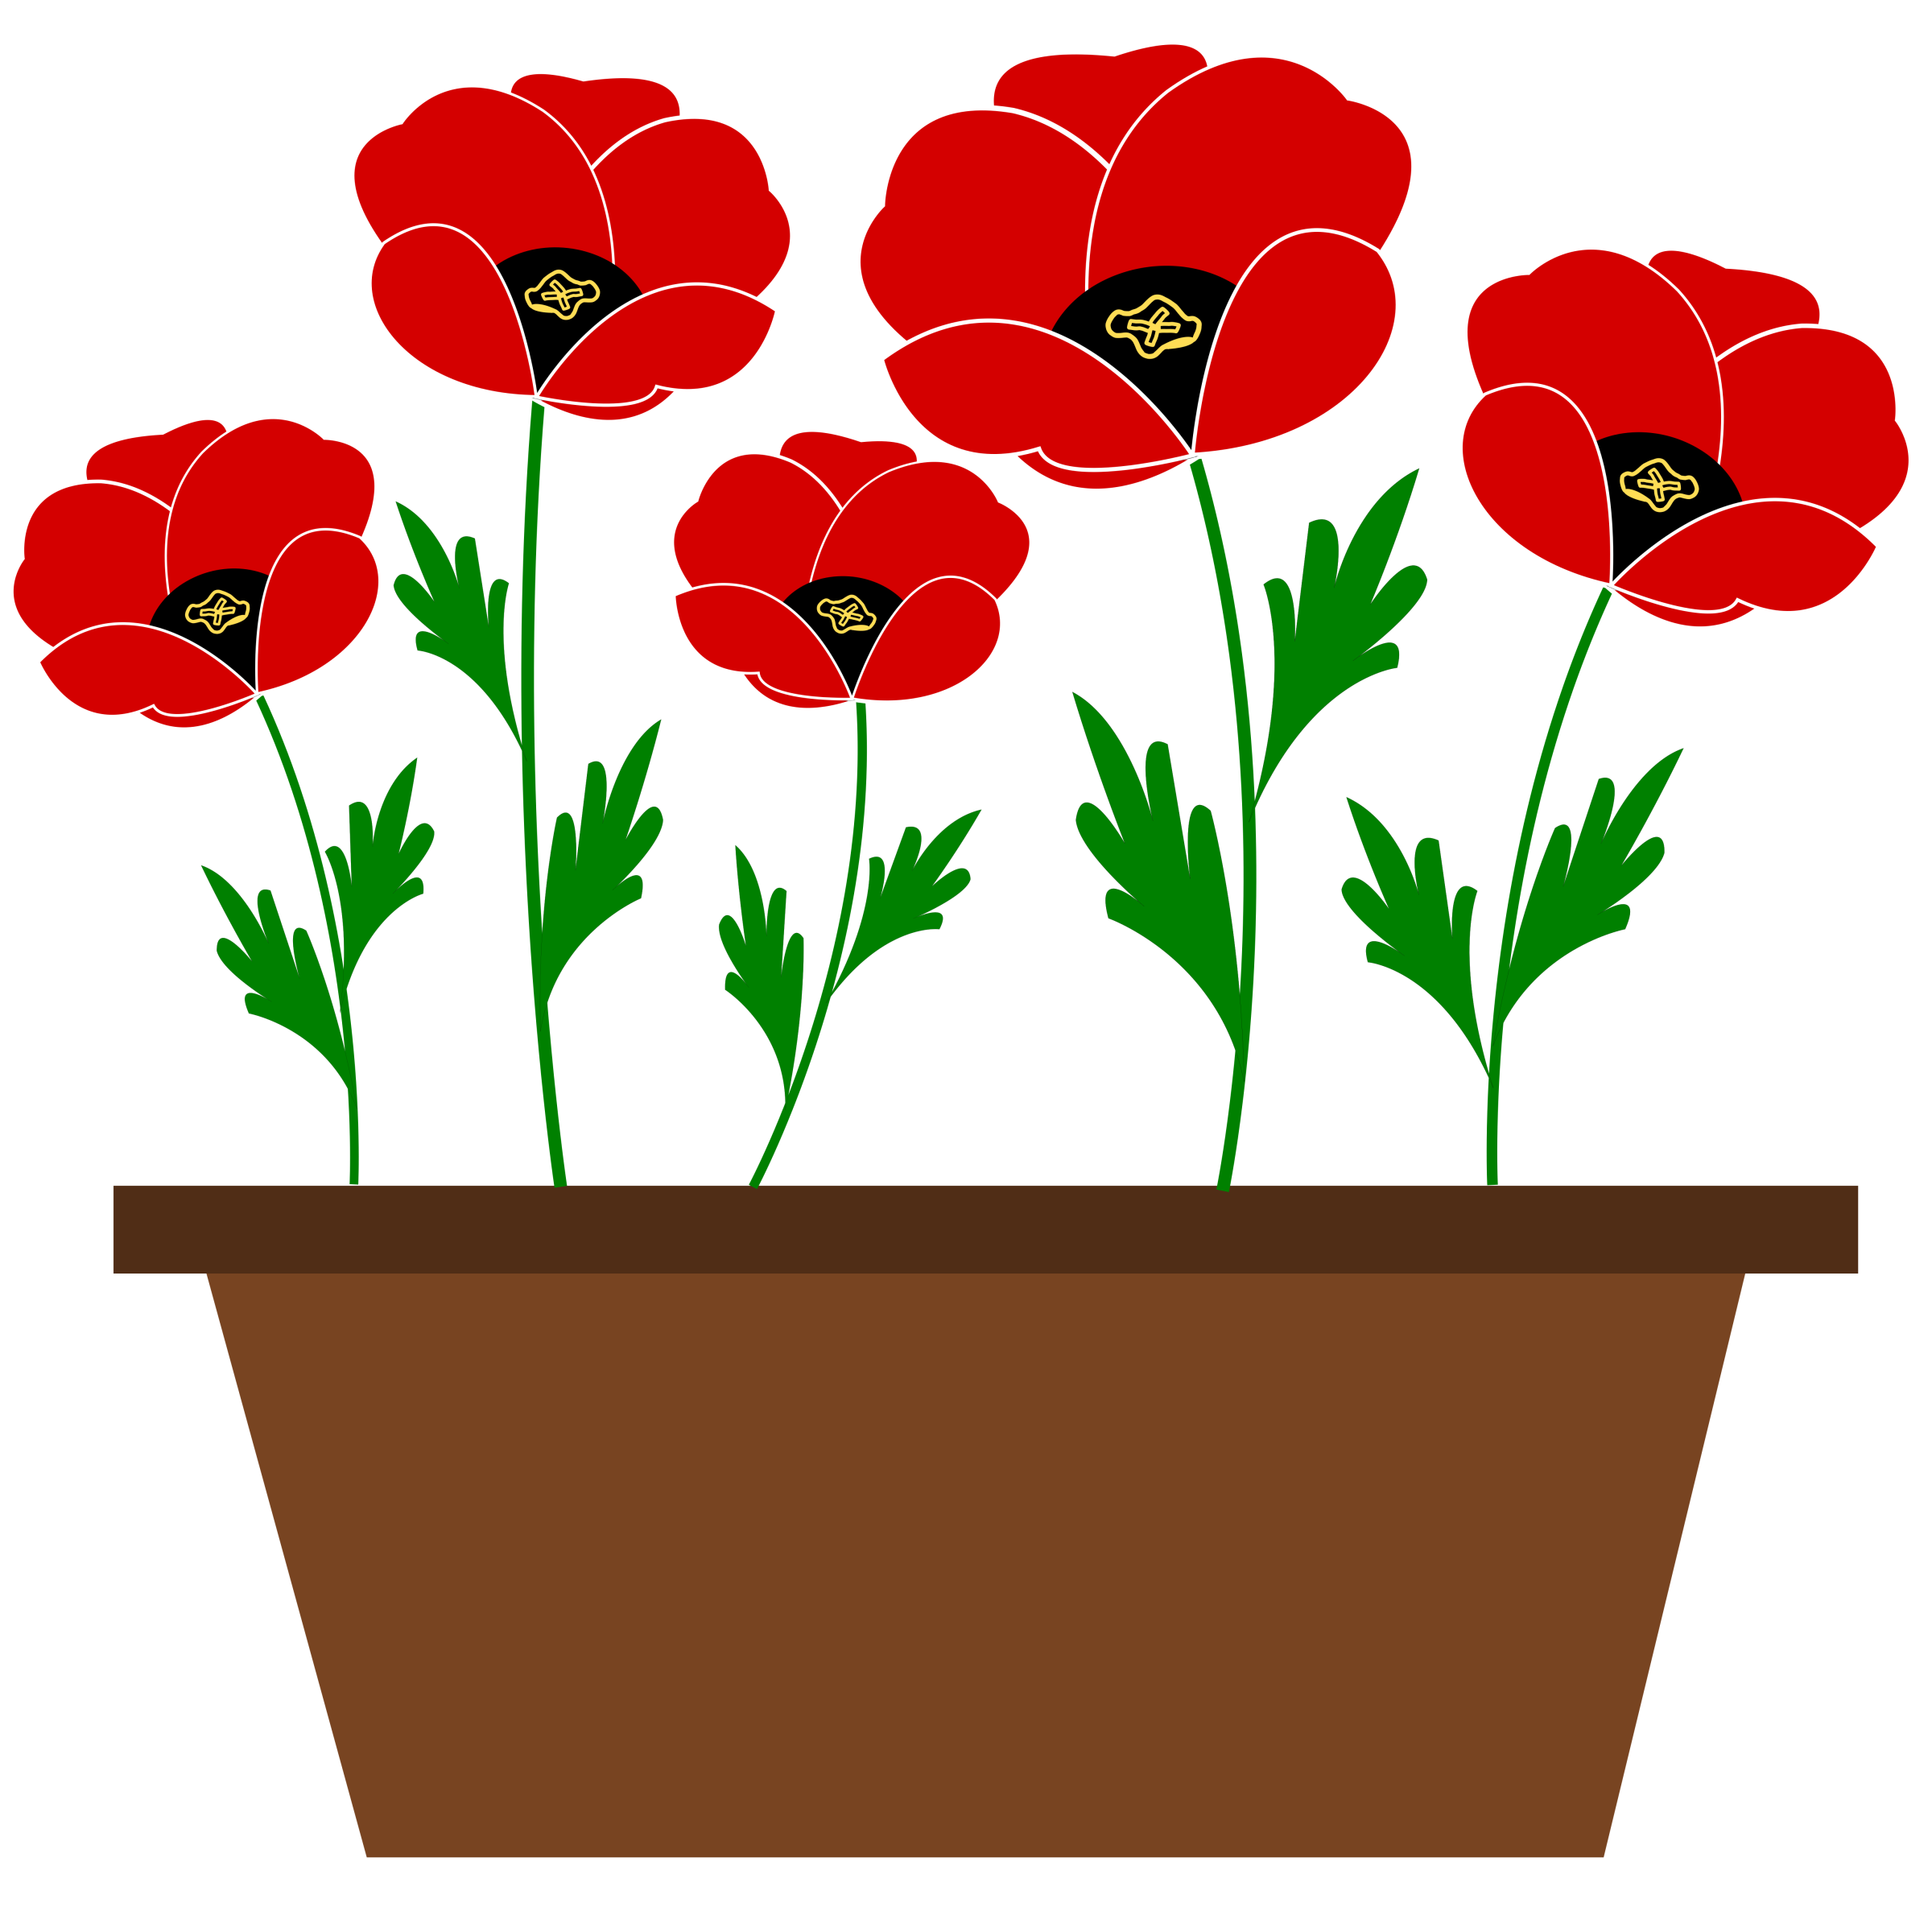 Poppies in a pot. Poppy clipart potplant